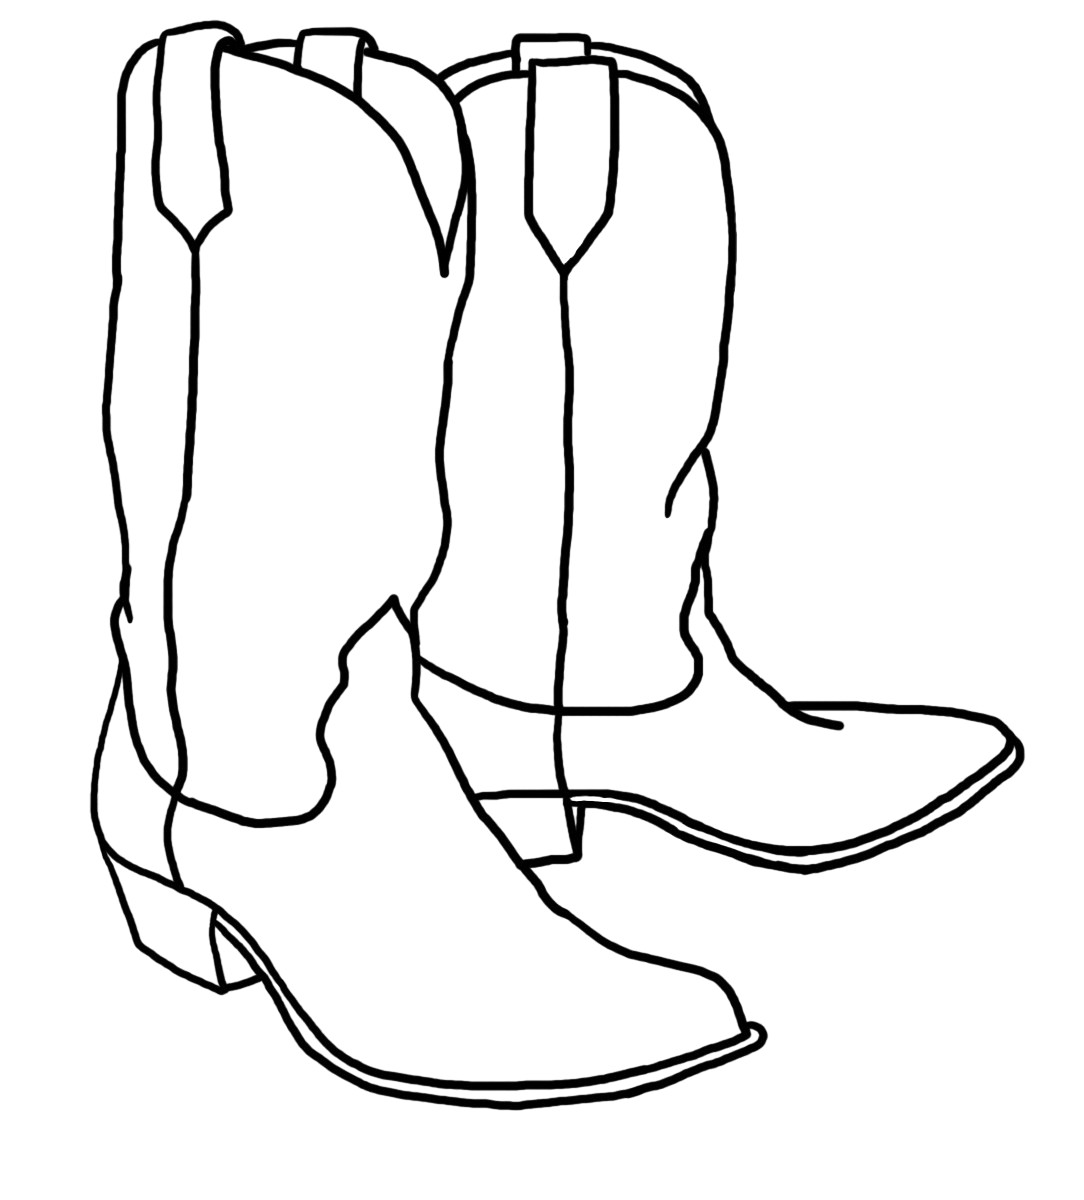 Cowgirl boots clipart black and white clip black and white library Cowboy boots clipart black and white 3 » Clipart Station clip black and white library